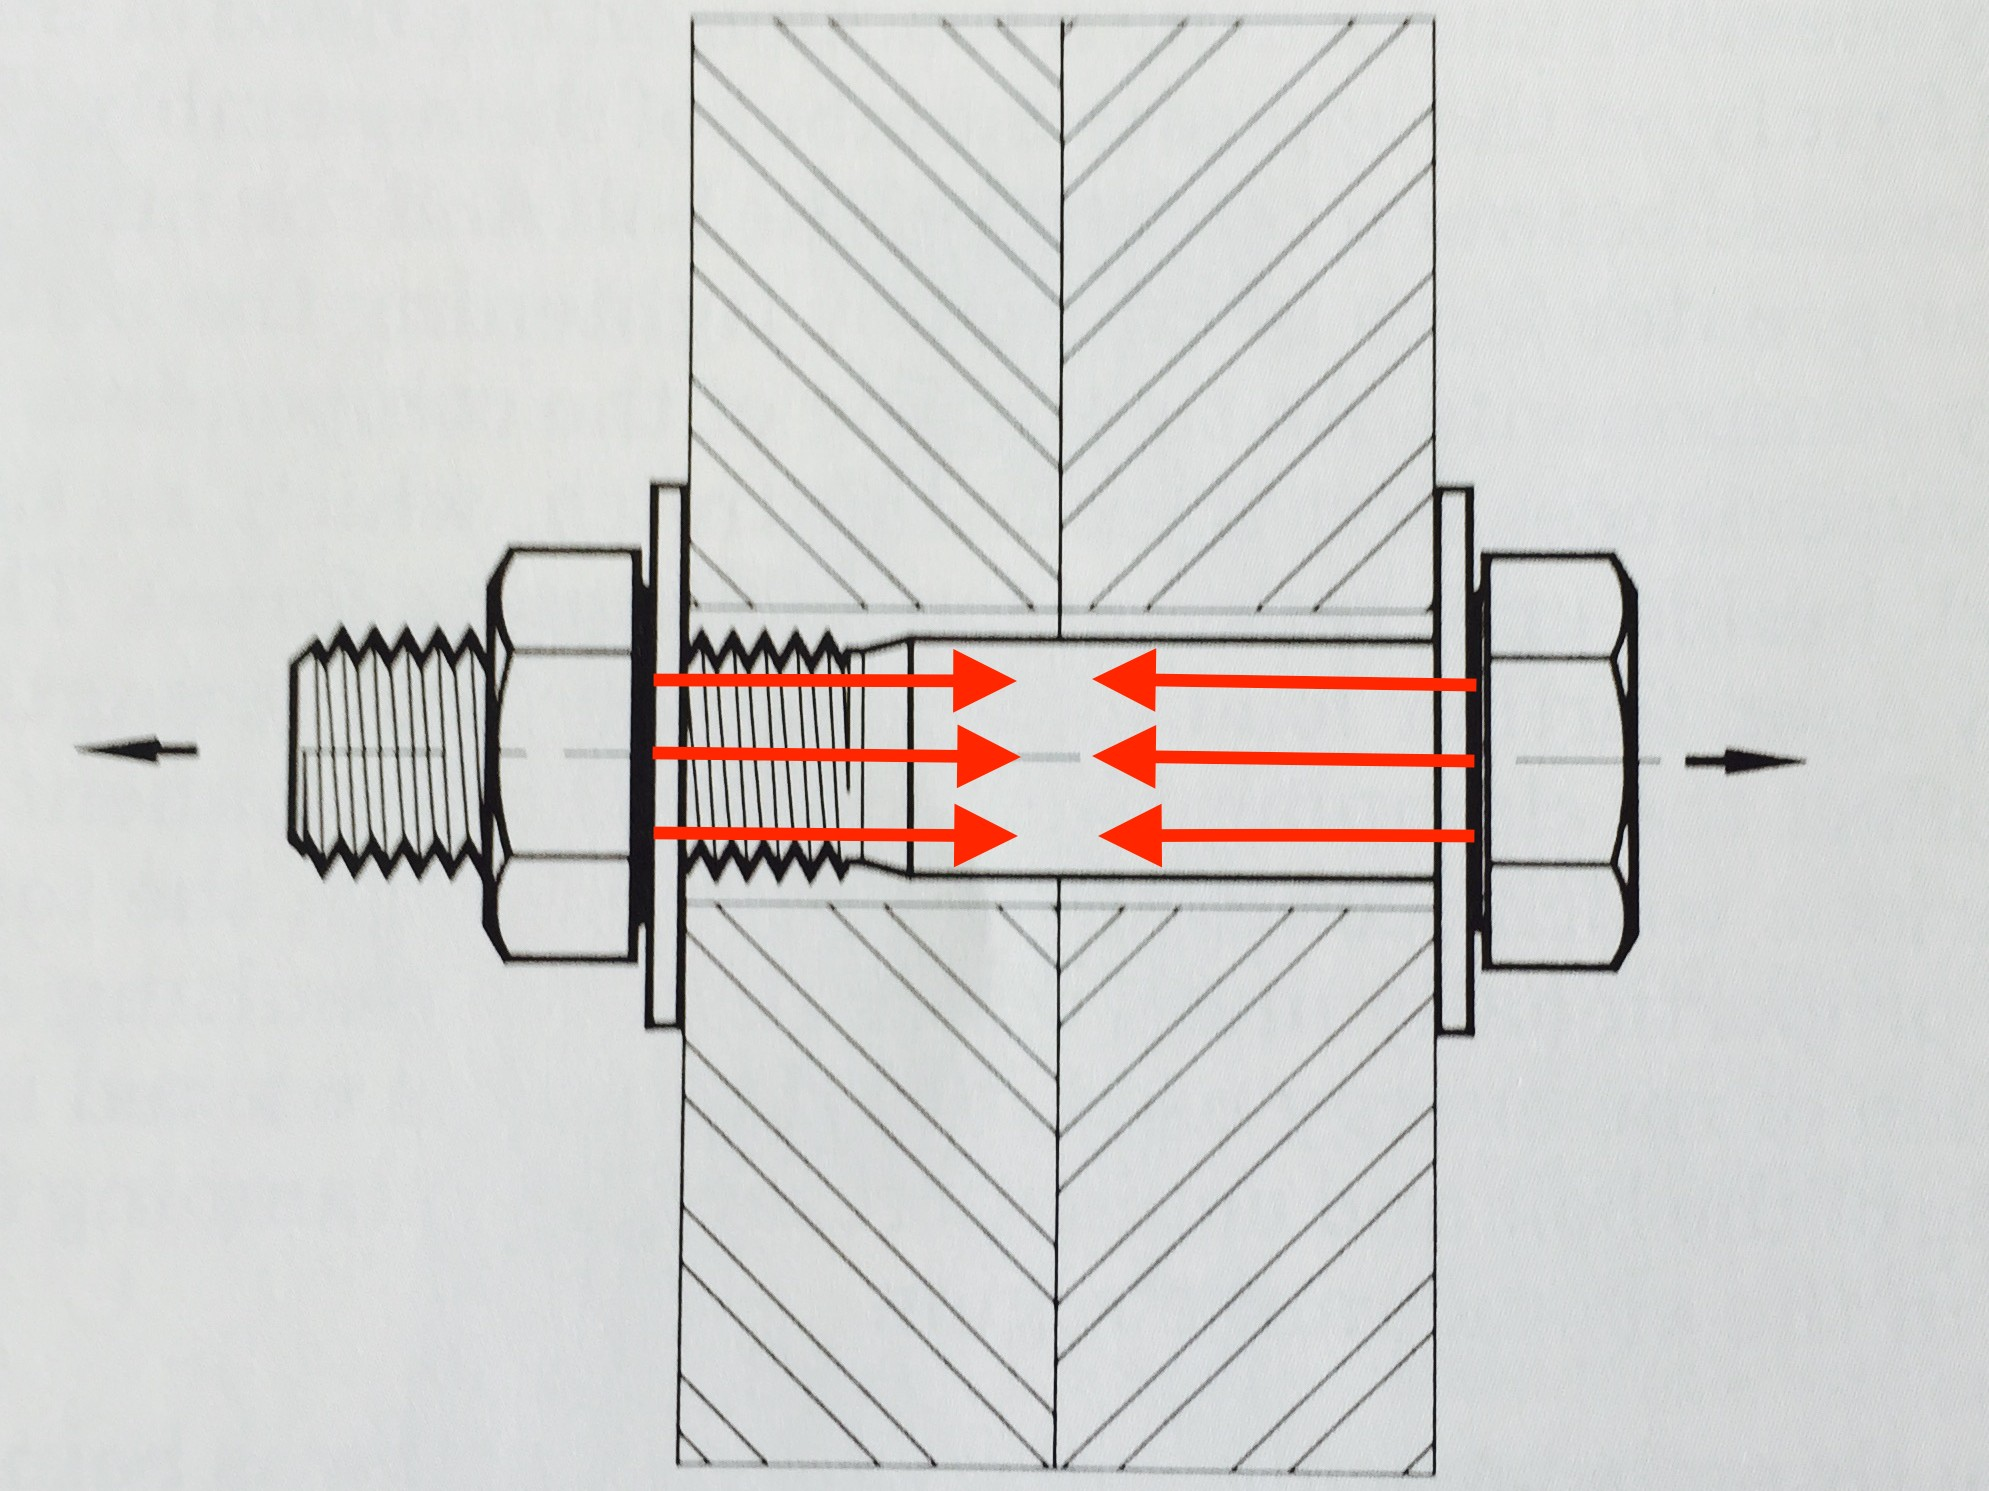 Bolt clamping two parts together. Bolt is under tension, the two parts are under compression.